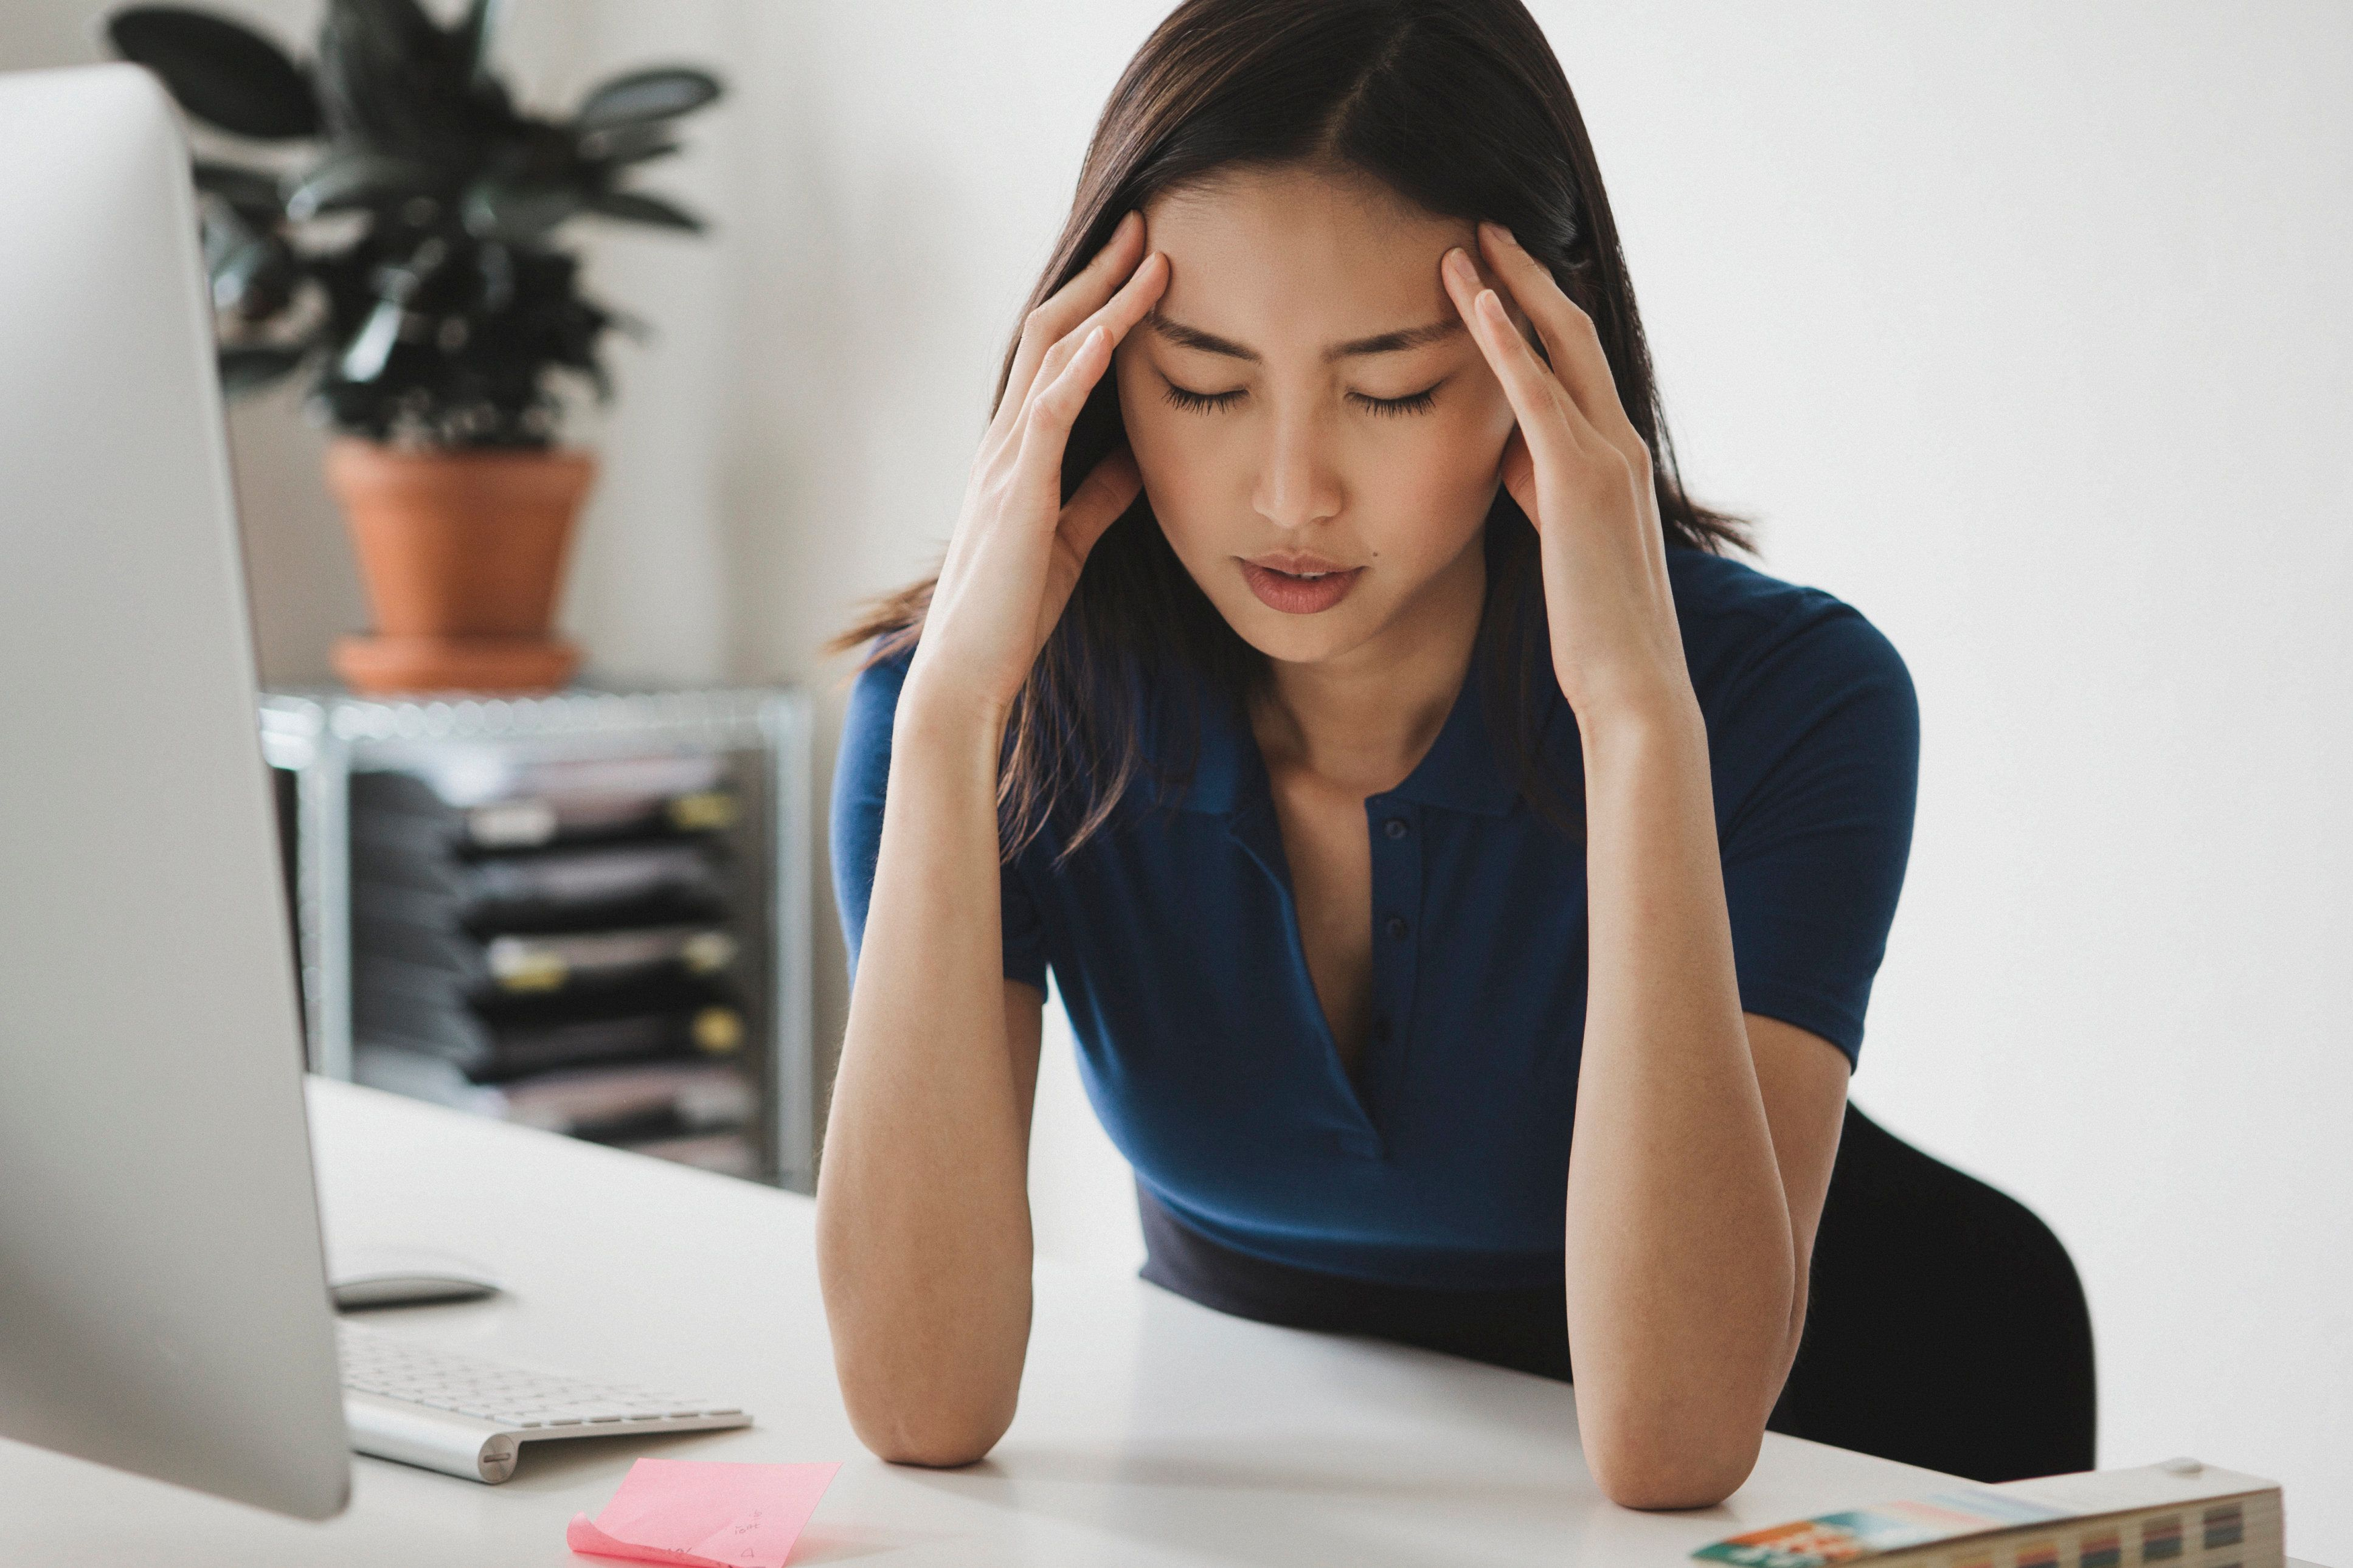 Young businesswoman suffering from headache at desk in office